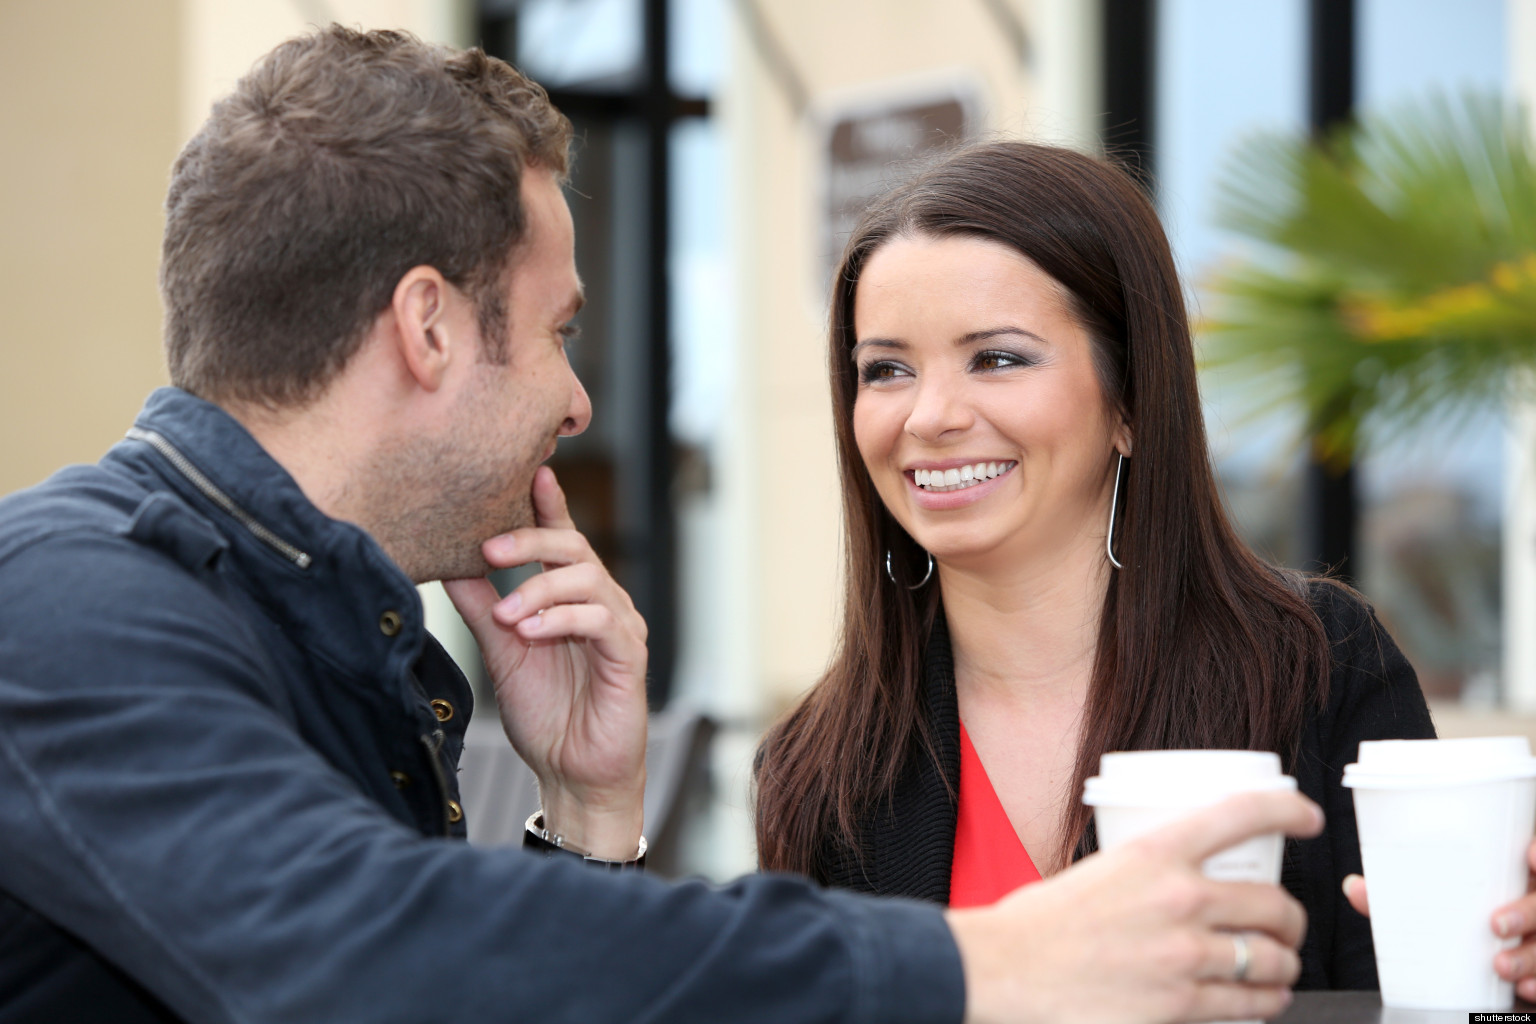 Dating After Divorce 10 Rules For A Stress Free Love Life